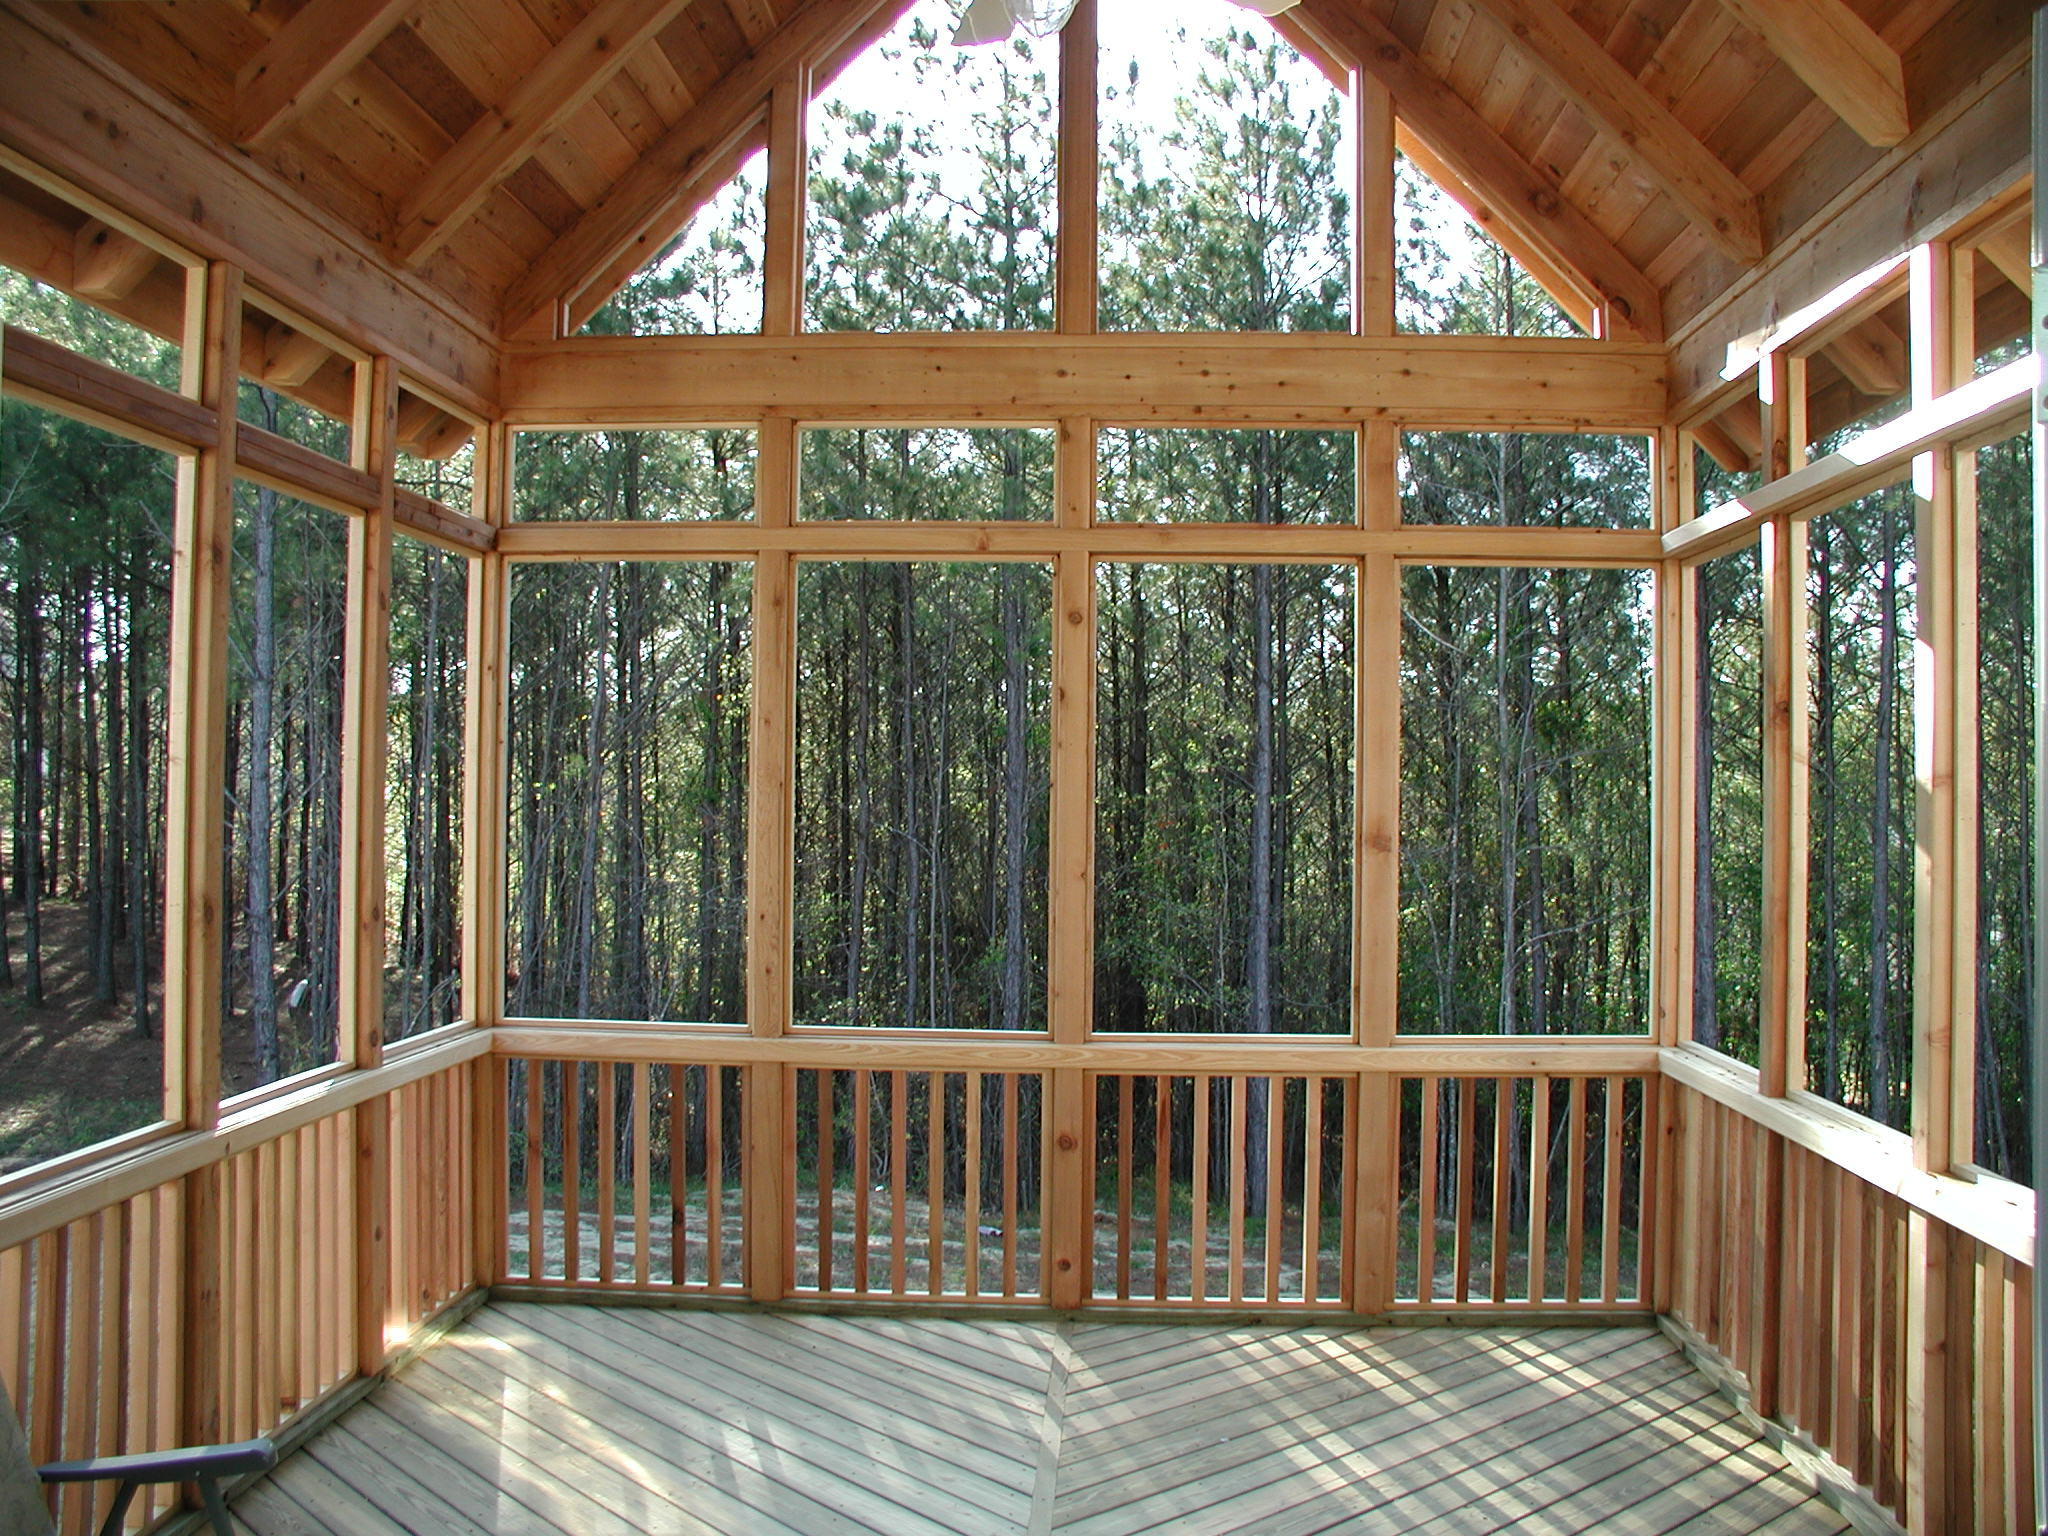 the most popular outdoor room is a screened porch because of its versatility a screened porch provides protection from the rain sun protection - Outdoor Screened Porches